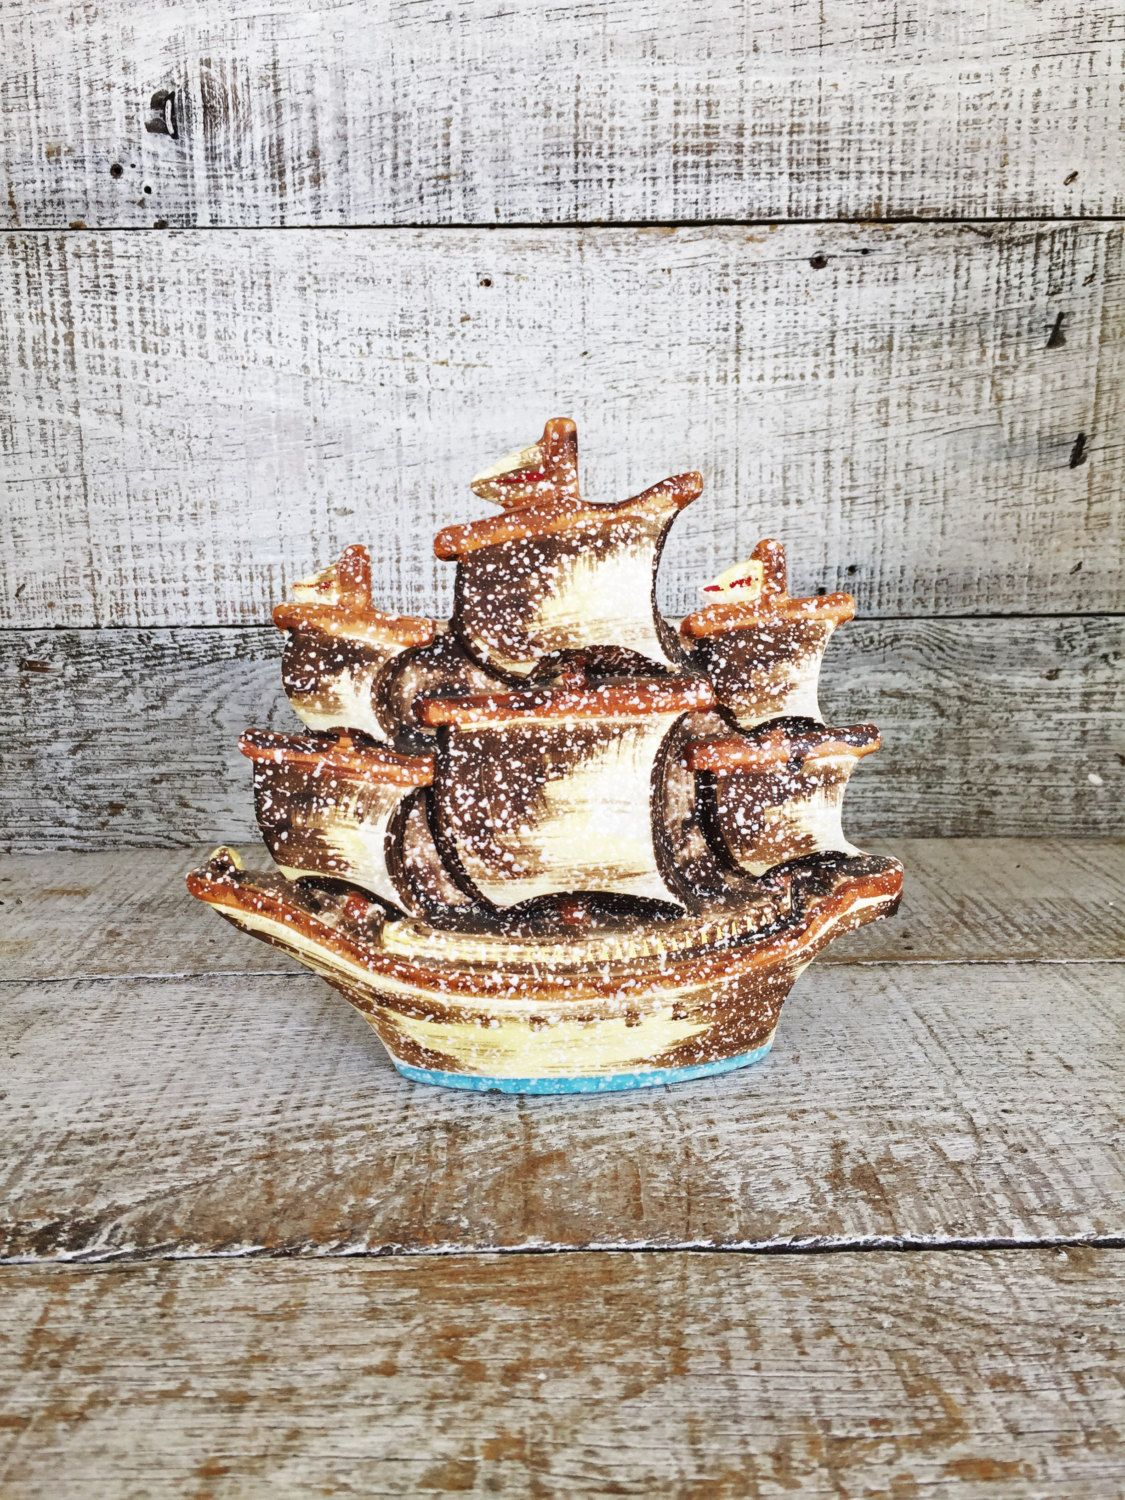 Vase ship hanging vase pirate ship wall pocket vase ceramic wall vase ship hanging vase pirate ship wall pocket vase ceramic wall vase hanging planter beach house decor mid century nautical decor reviewsmspy